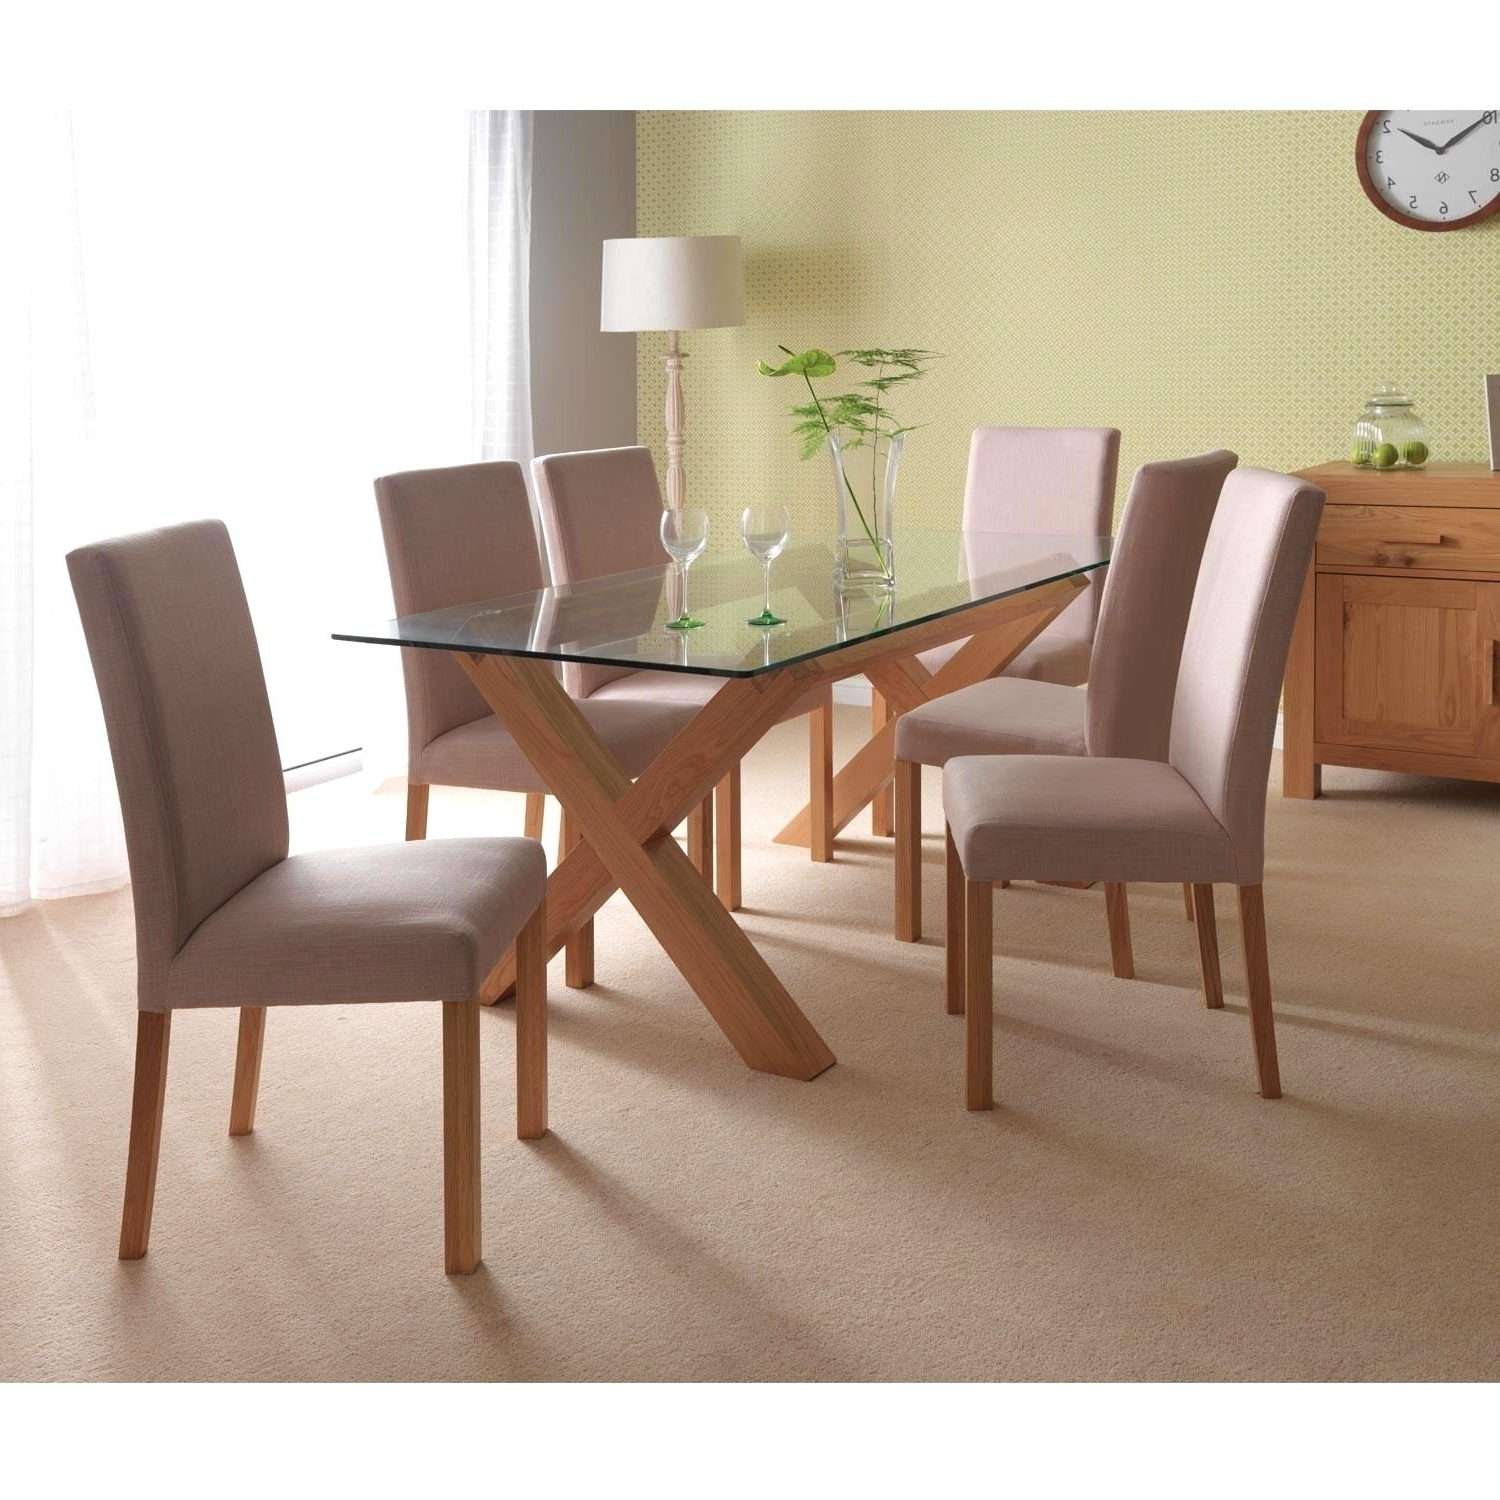 Oak And Glass Dining Tables For Widely Used Fascinating Oak Glass Dining Tables Ideas Winsome Dining Space    (View 14 of 25)